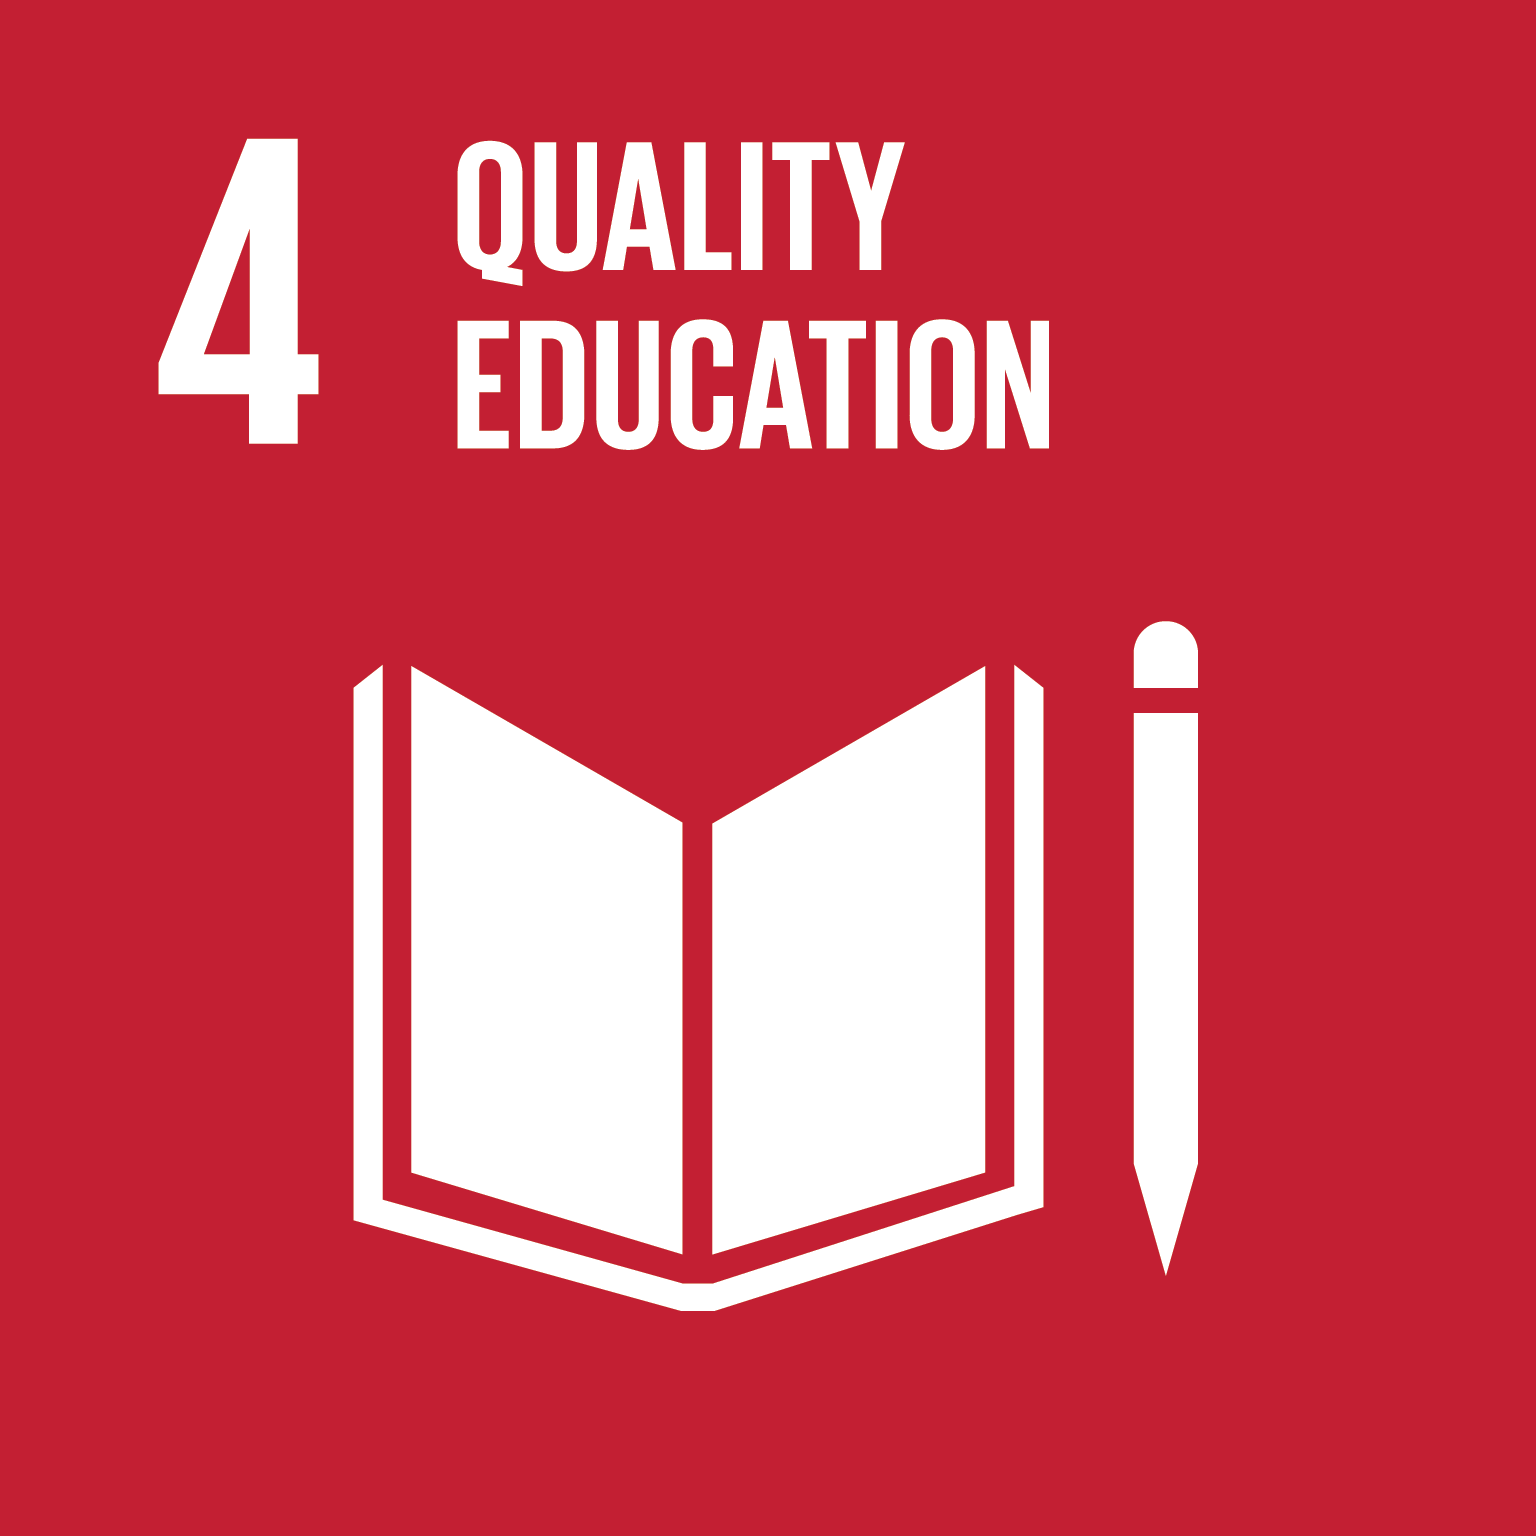 Quality education logo.